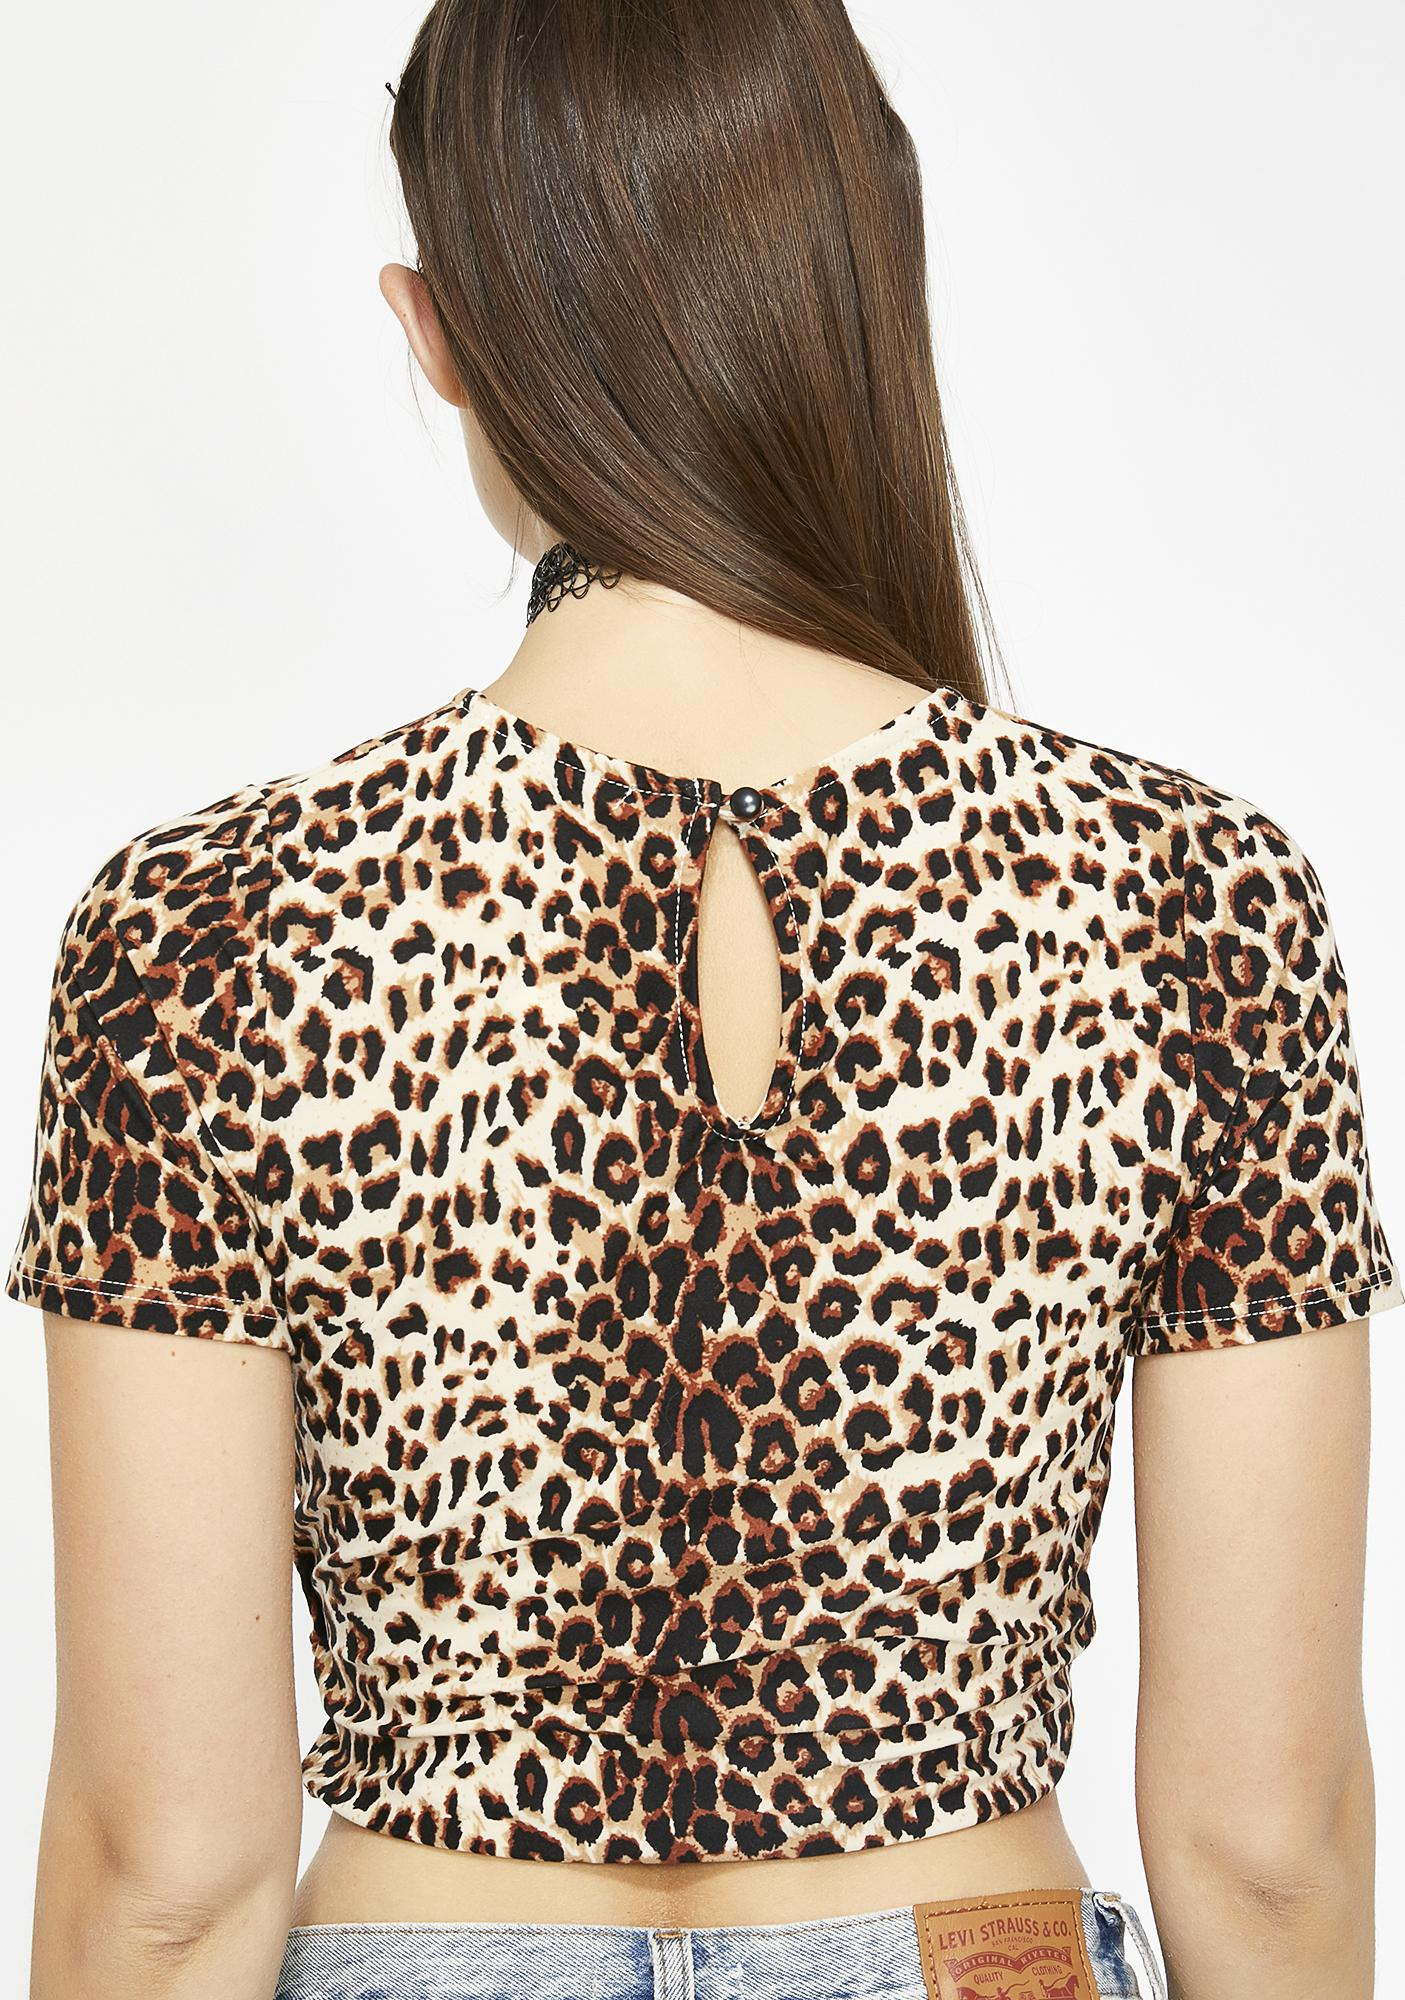 The Animal Within Leopard Top